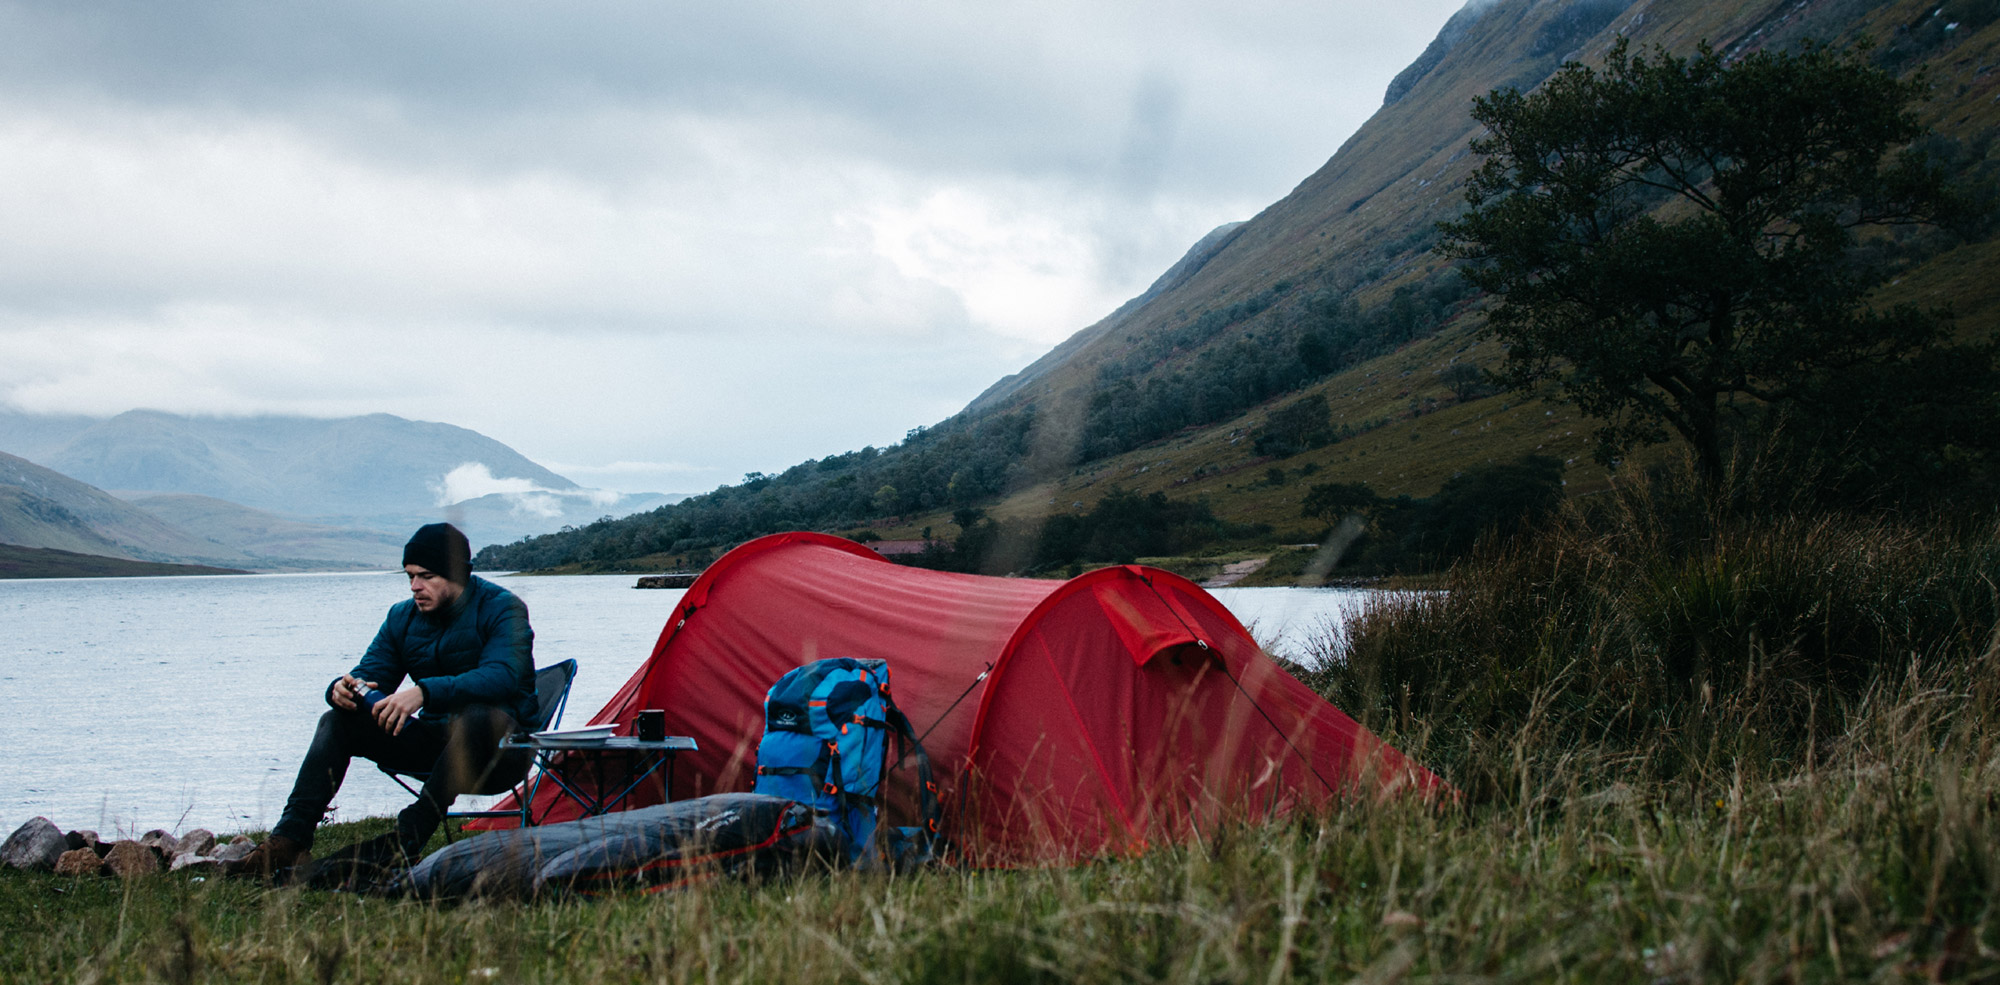 A Word on Dirty Camping